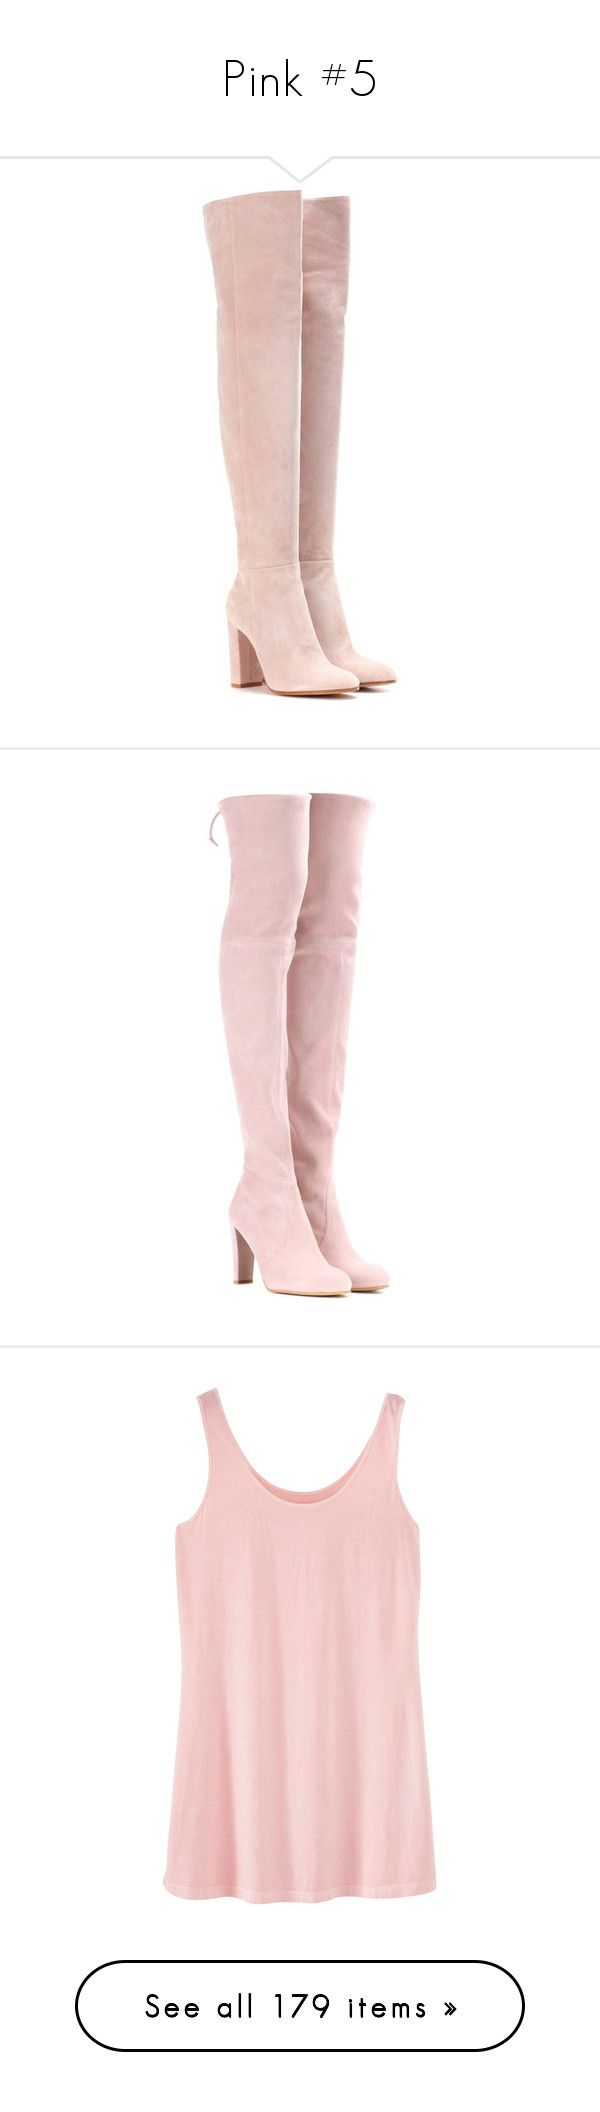 """""""Pink #5"""" by booknerd1326 ❤ liked on Polyvore featuring shoes, boots, heels, botas, pink, suede boots, pink over the knee boots, above the knee boots, gianvito rossi over the knee boots and over-knee boots"""